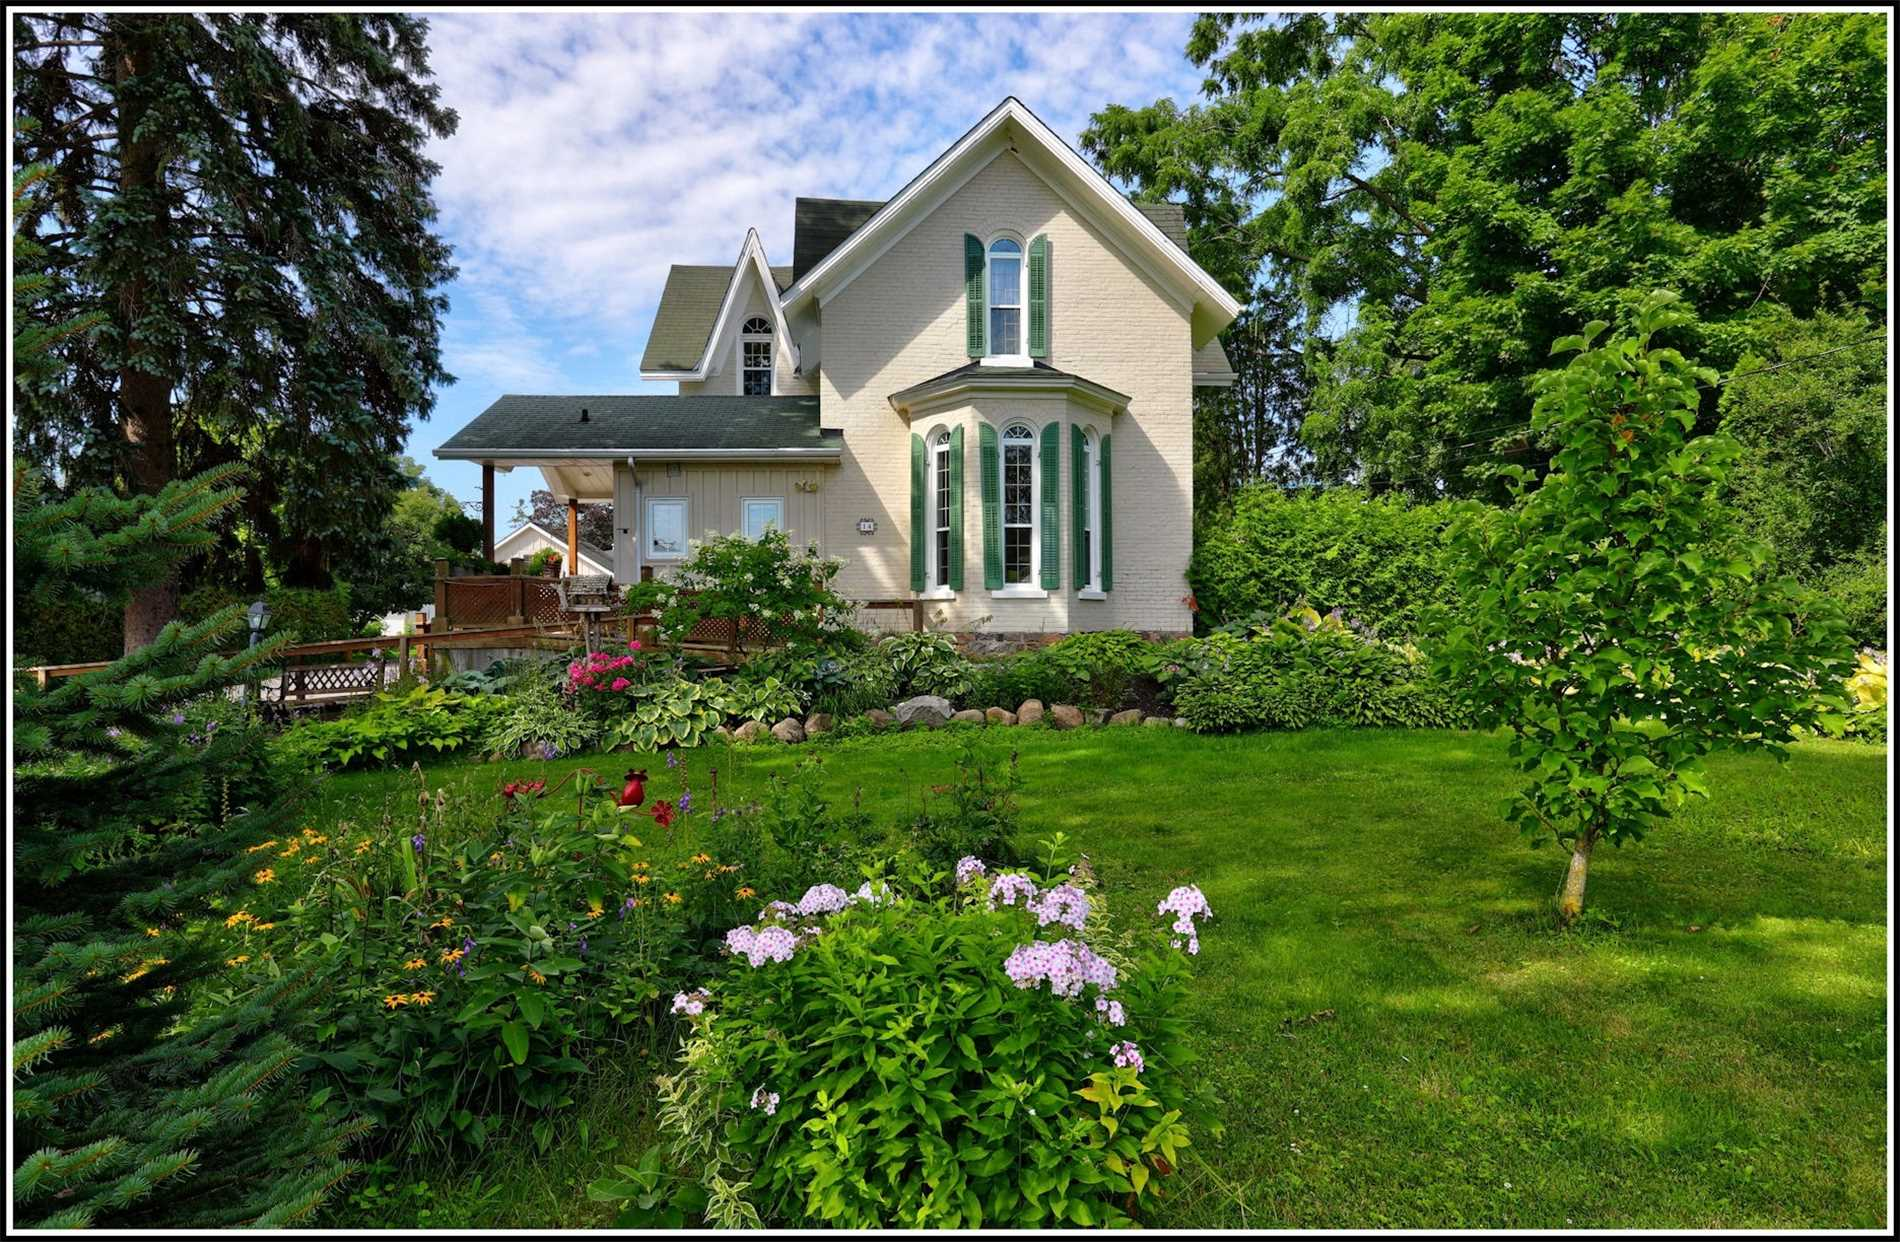 Located In Historic Brighton, On This Ca 1872 Brick Home Is Near Lake Ontario, Pres'quile Bay & Prince Edward County. Property Is Currently An Established 65 Person Restaurant On Main Level, Owner Suite On 2nd Level & Heated Guest Suite Above Garage. Features Include Original Oak Staircase, Period Trim, Arch-Top Windows W/Energy Efficient Insets, Marble Fireplace & Large Principal Rooms. This Property Is Ready For Quality Living Or Next Business Venture.